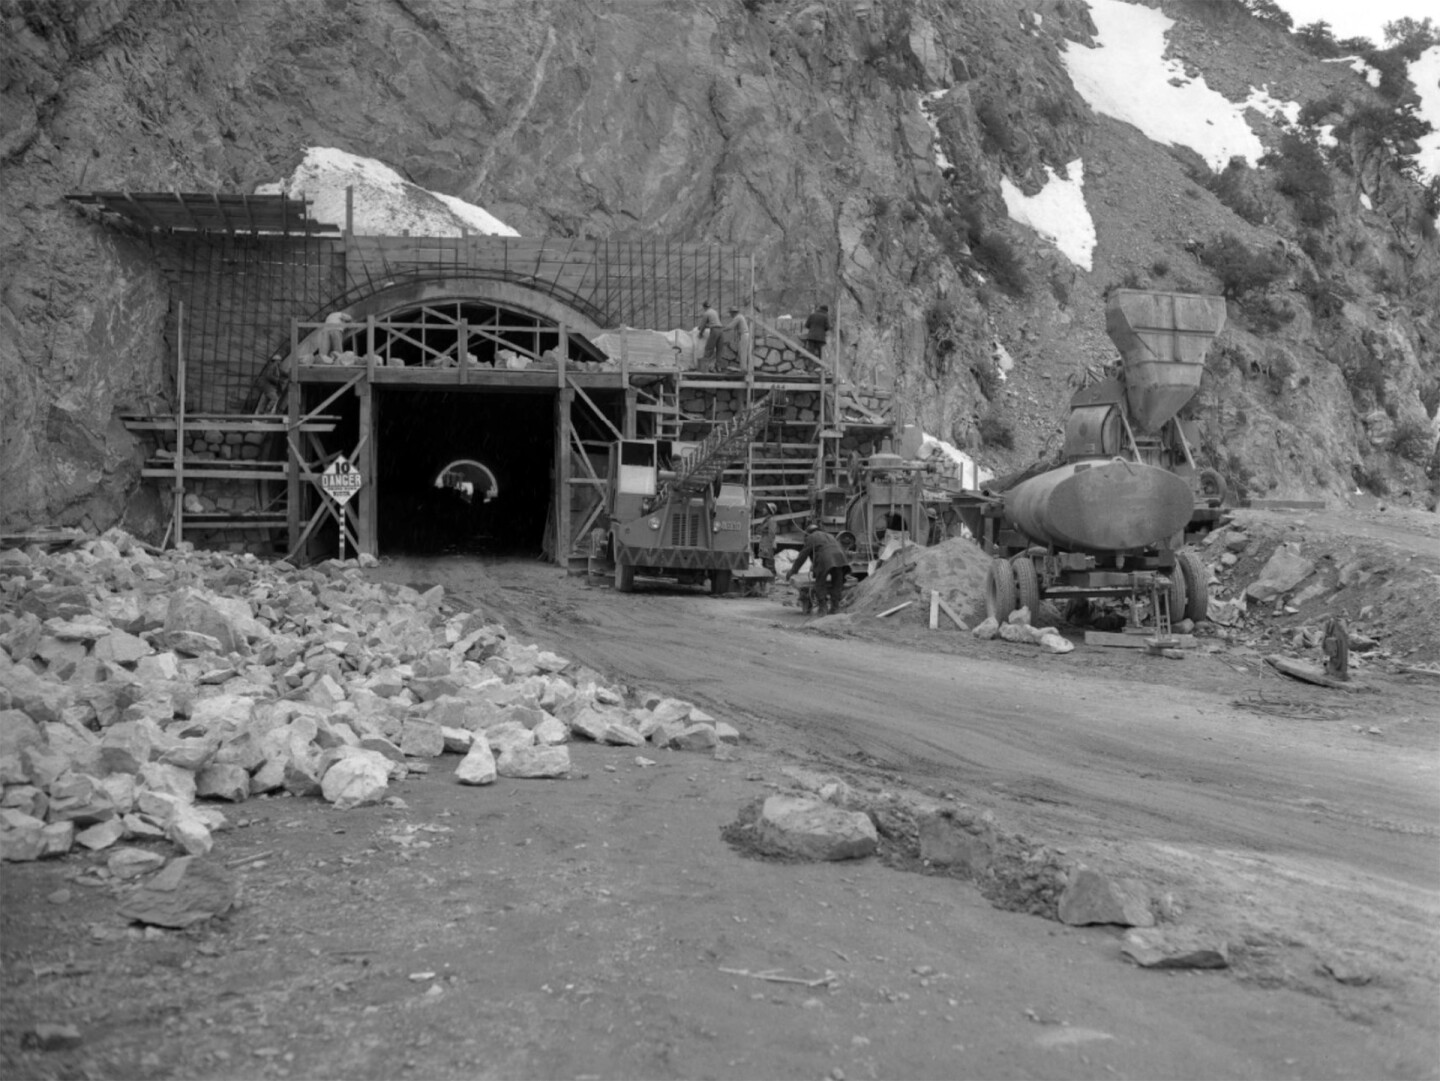 Angeles Crest Highway tunnel under construction